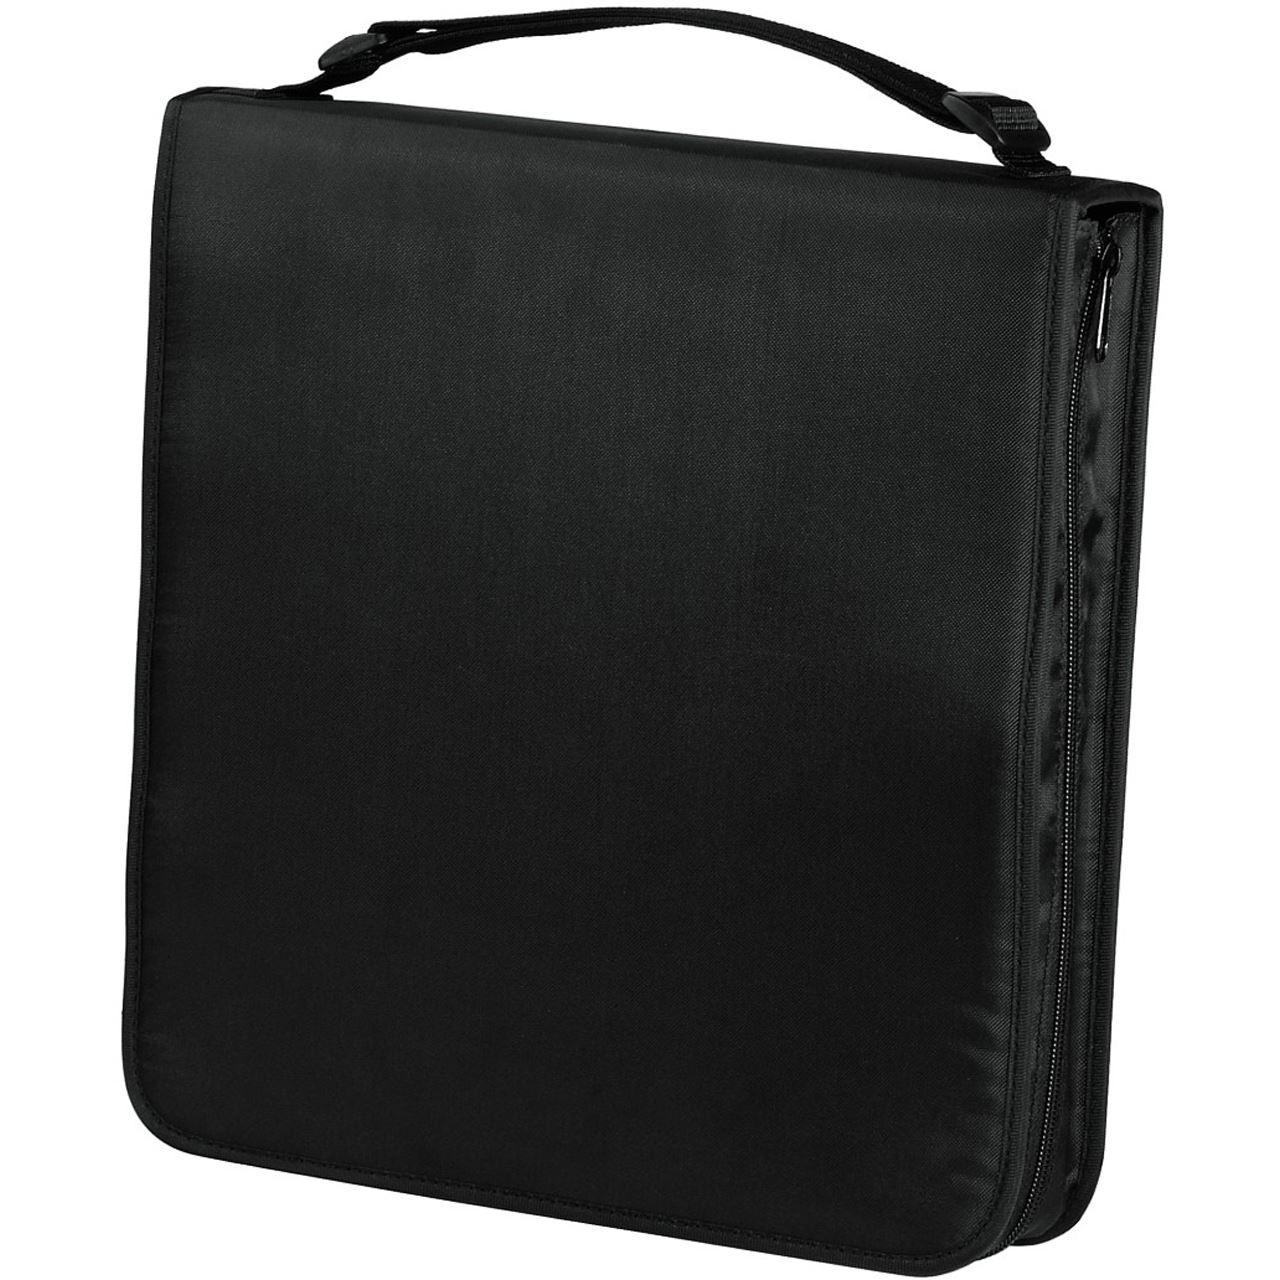 hama cd dvd blu ray tasche 160 schwarz tasche f r aufbewahrung 00033834. Black Bedroom Furniture Sets. Home Design Ideas